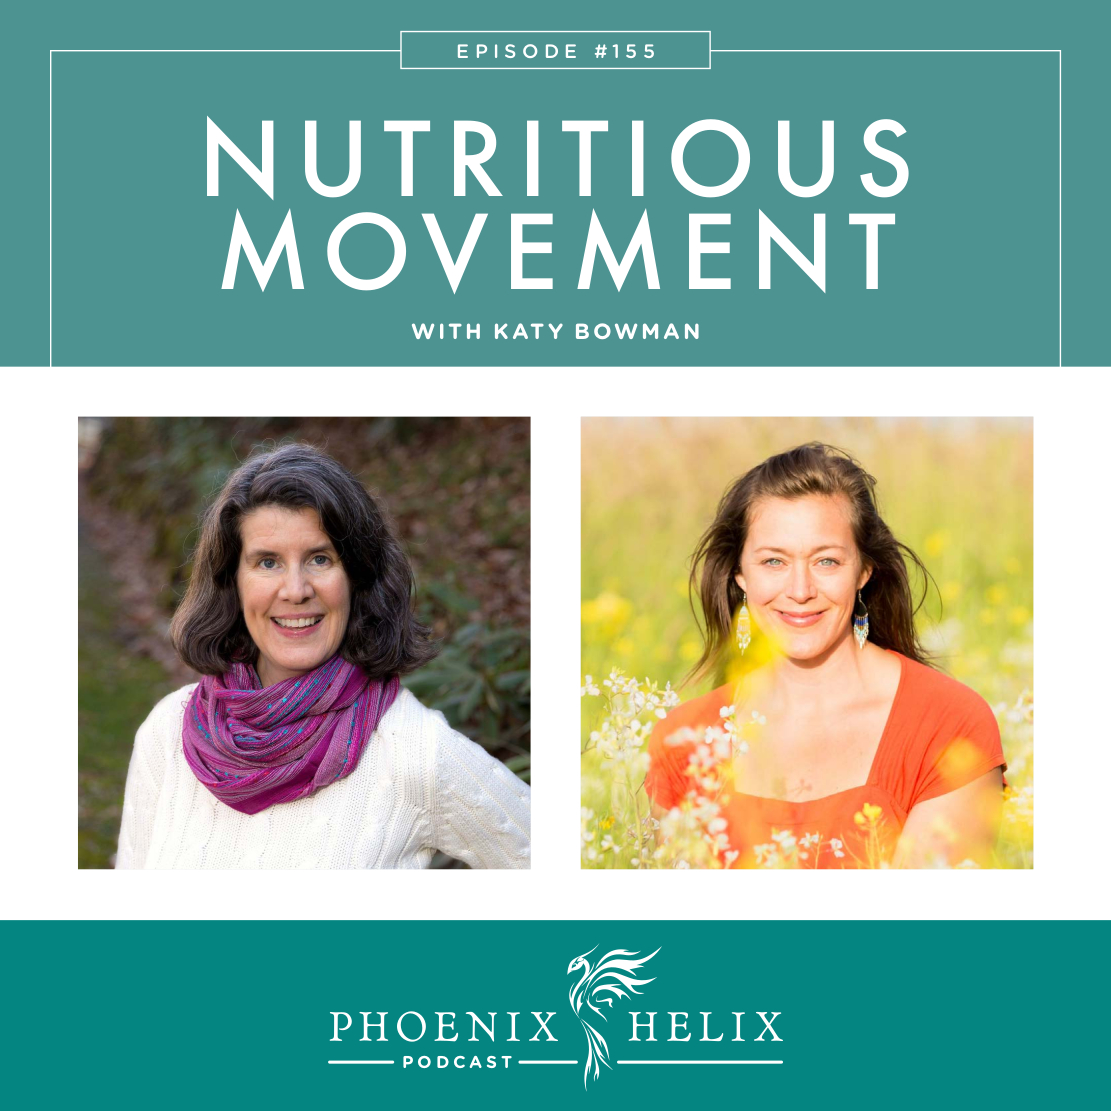 Nutritious Movement with Katy Bowman | Phoenix Helix Podcast